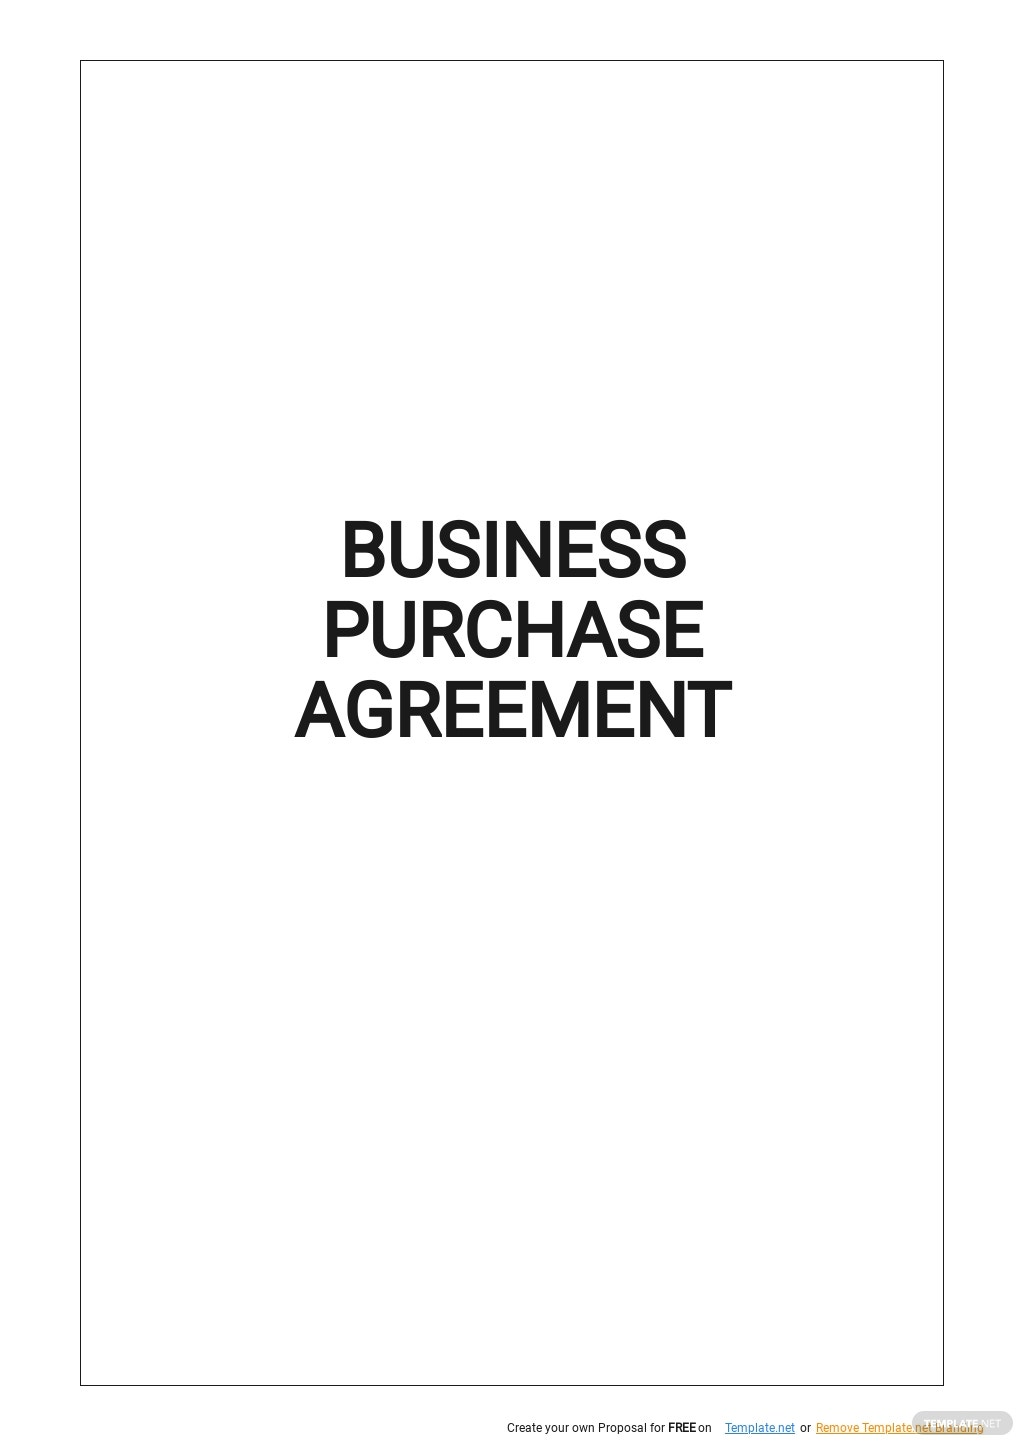 Simple Business Purchase Agreement Template.jpe